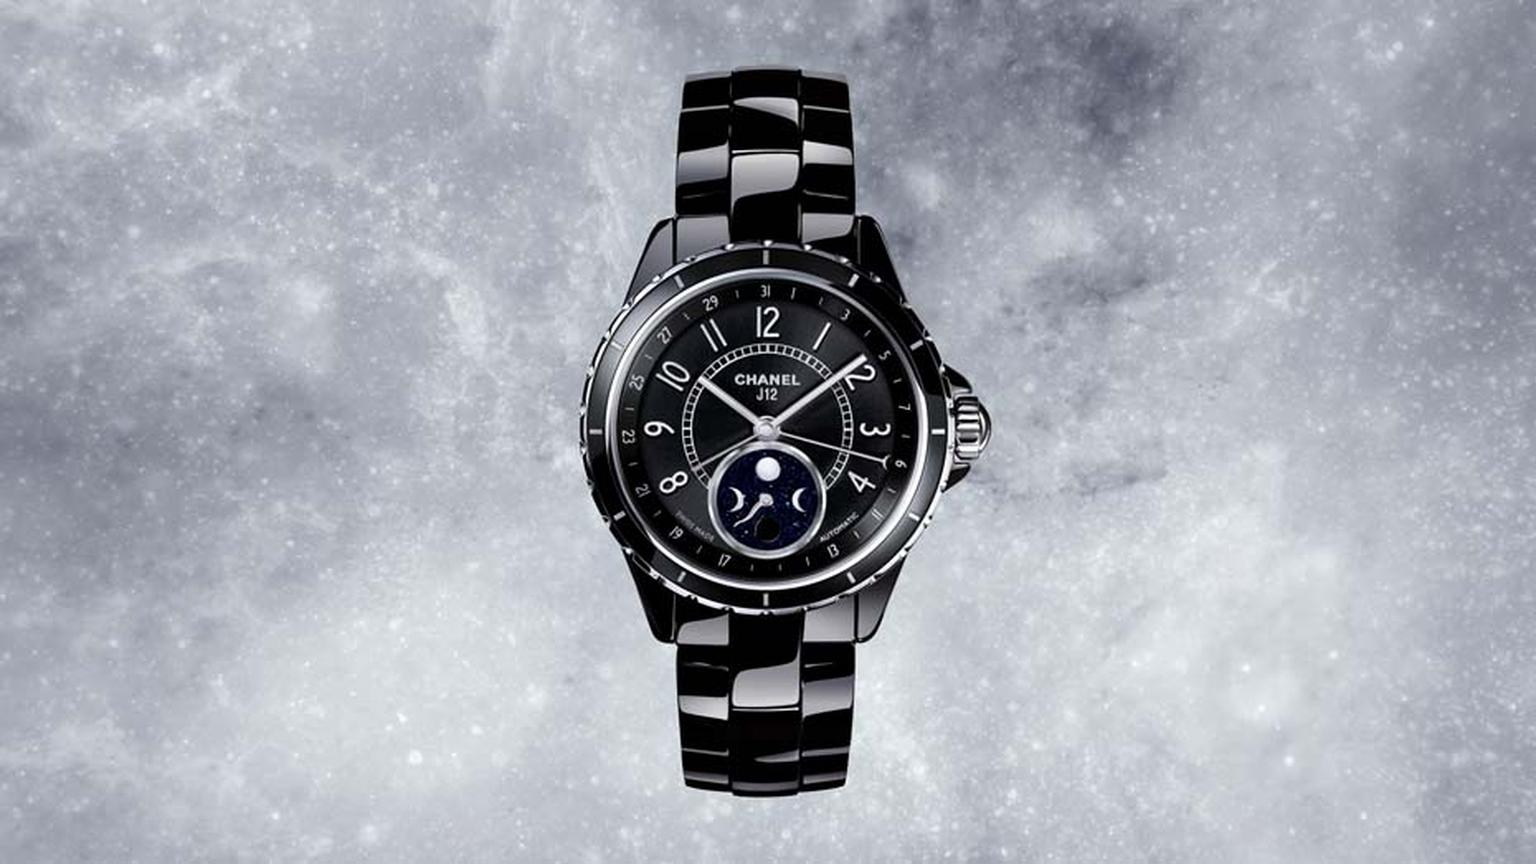 Chanel's iconic J12 ceramic watch features a blue aventurine Moon phase counter